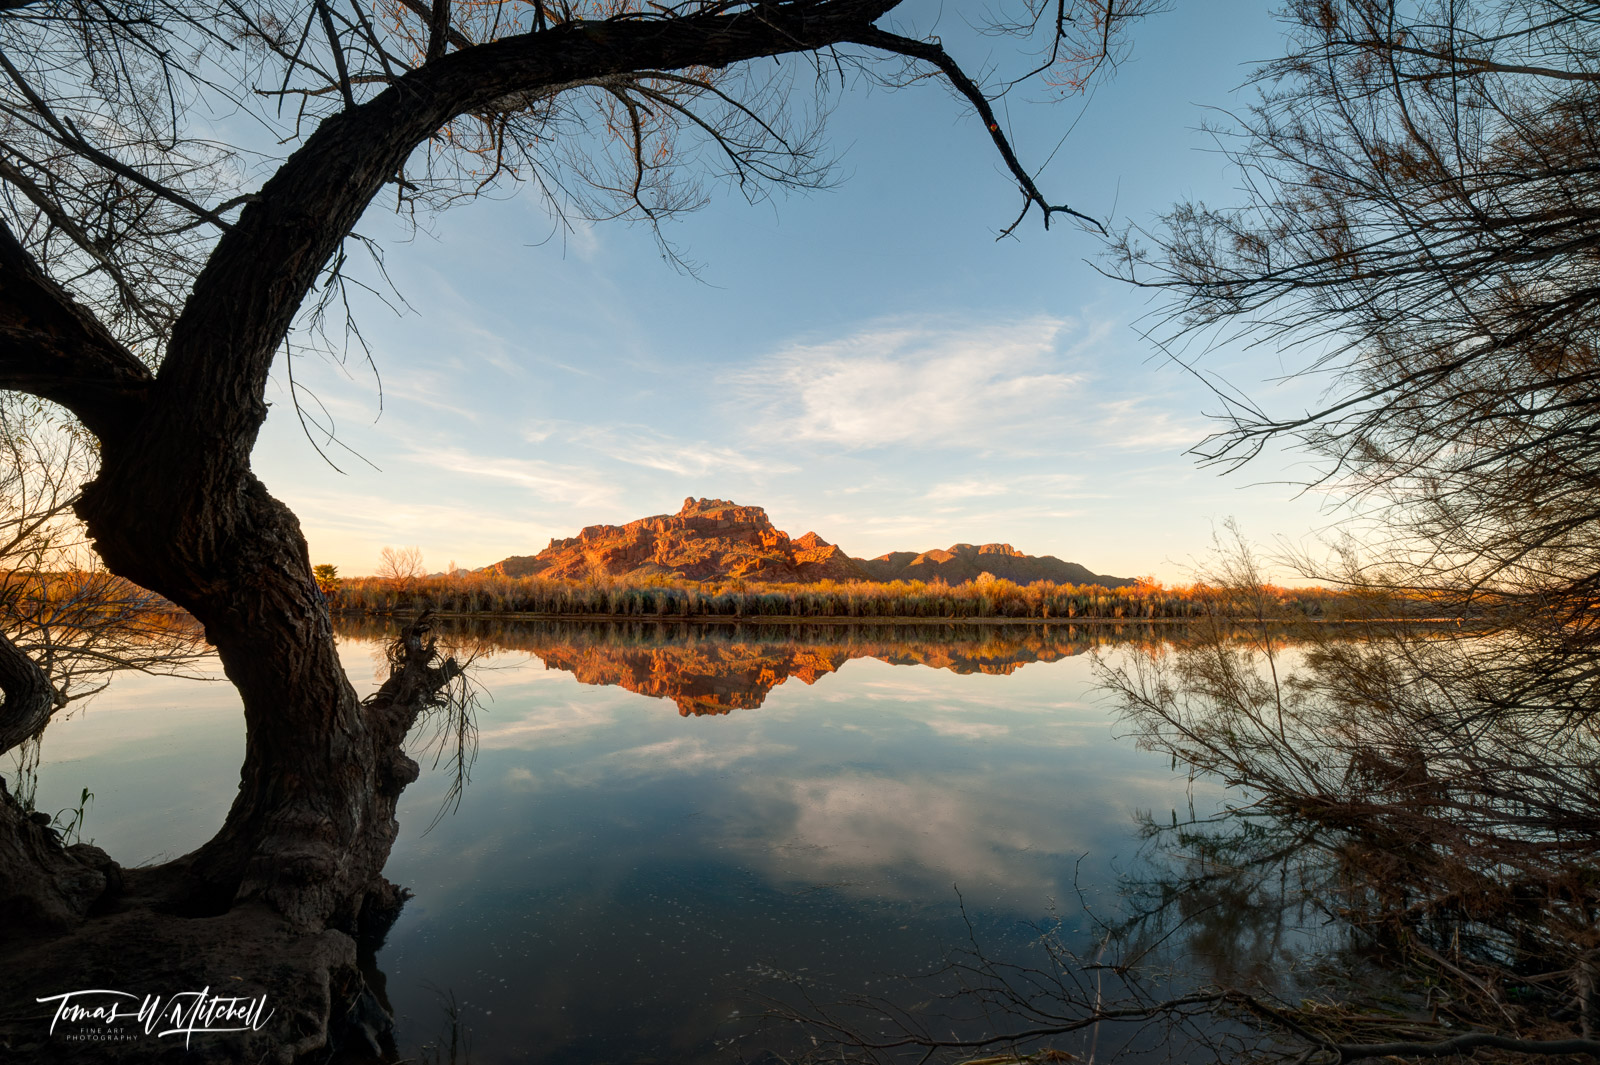 limited edition, fine art, prints, salt river, arizona, tree,  photograph, branches, red mountain, reflection, photo